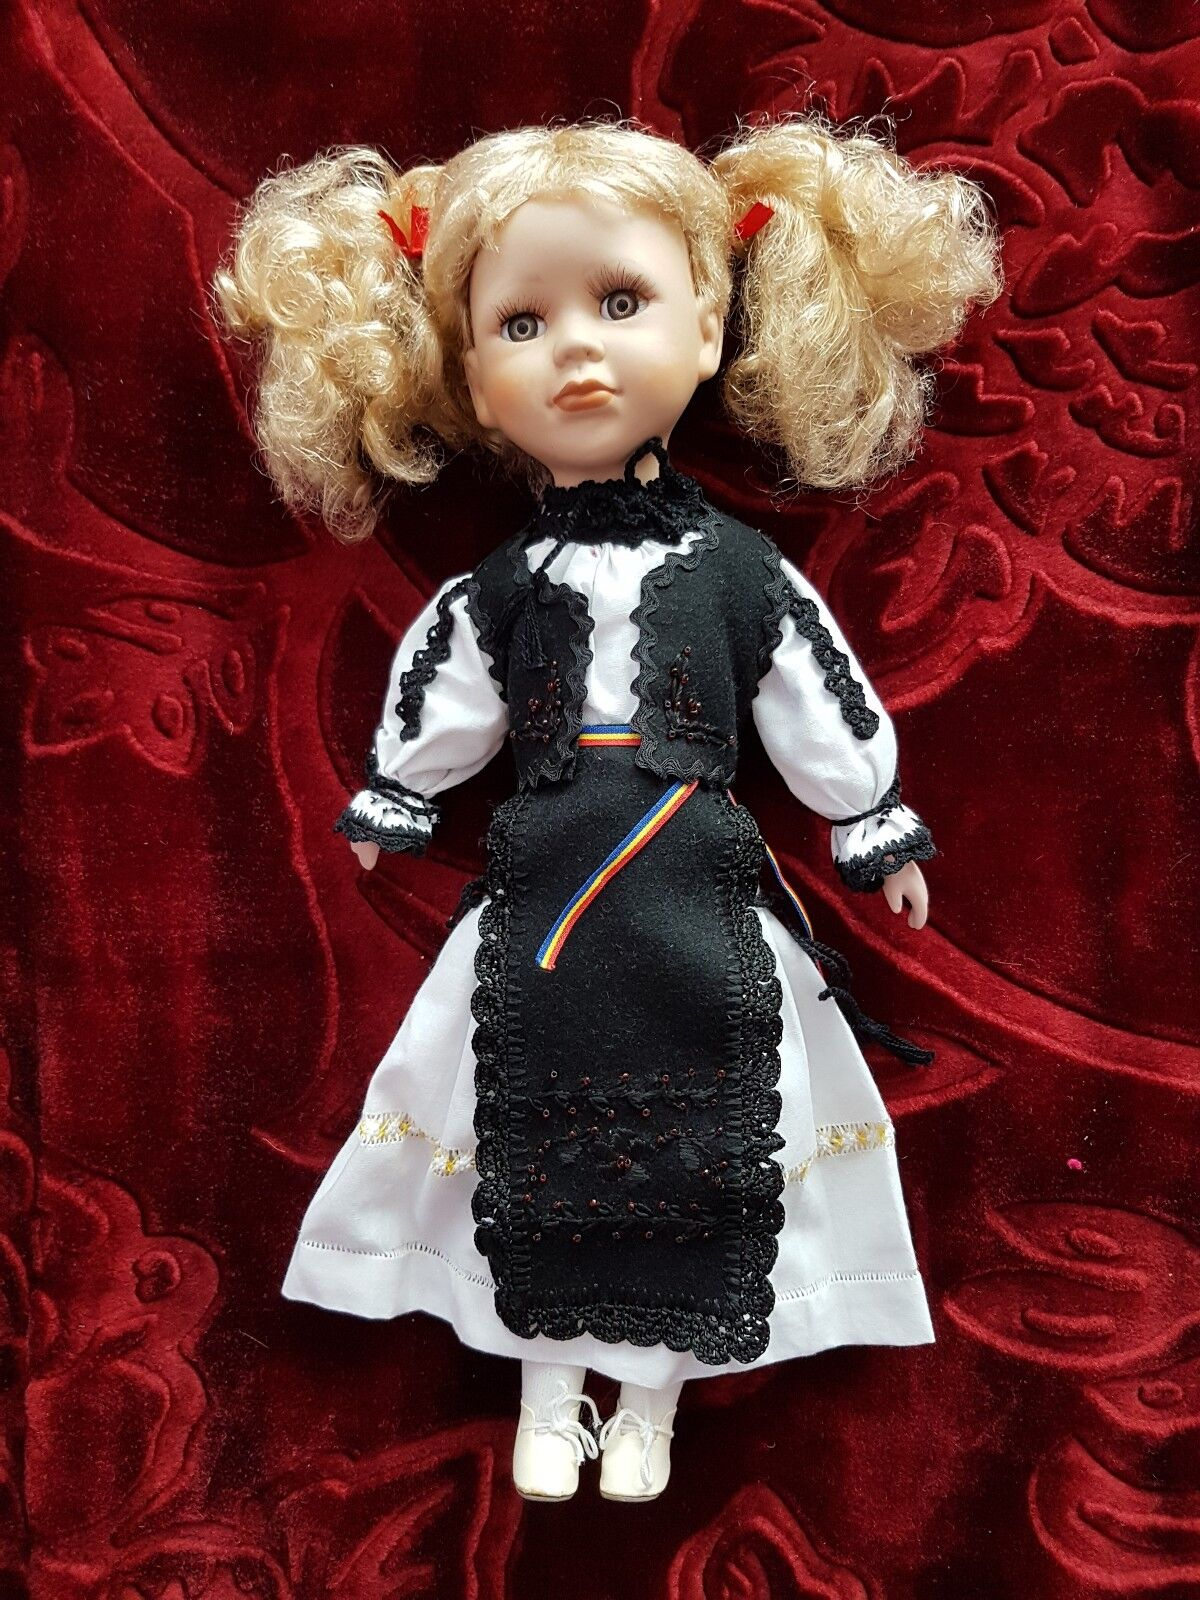 Vintage doll in Romanian traditional outfit